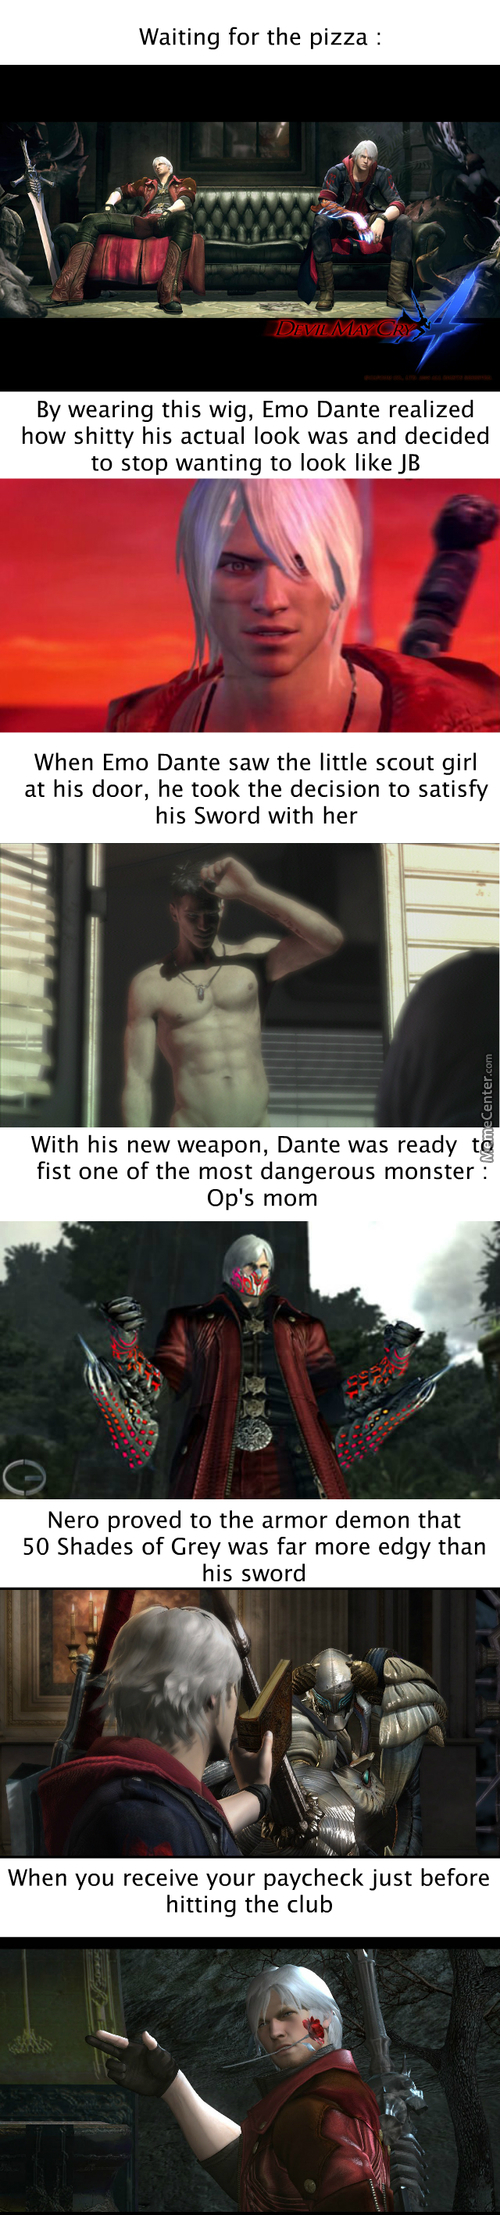 Dmc: Dank May Cry